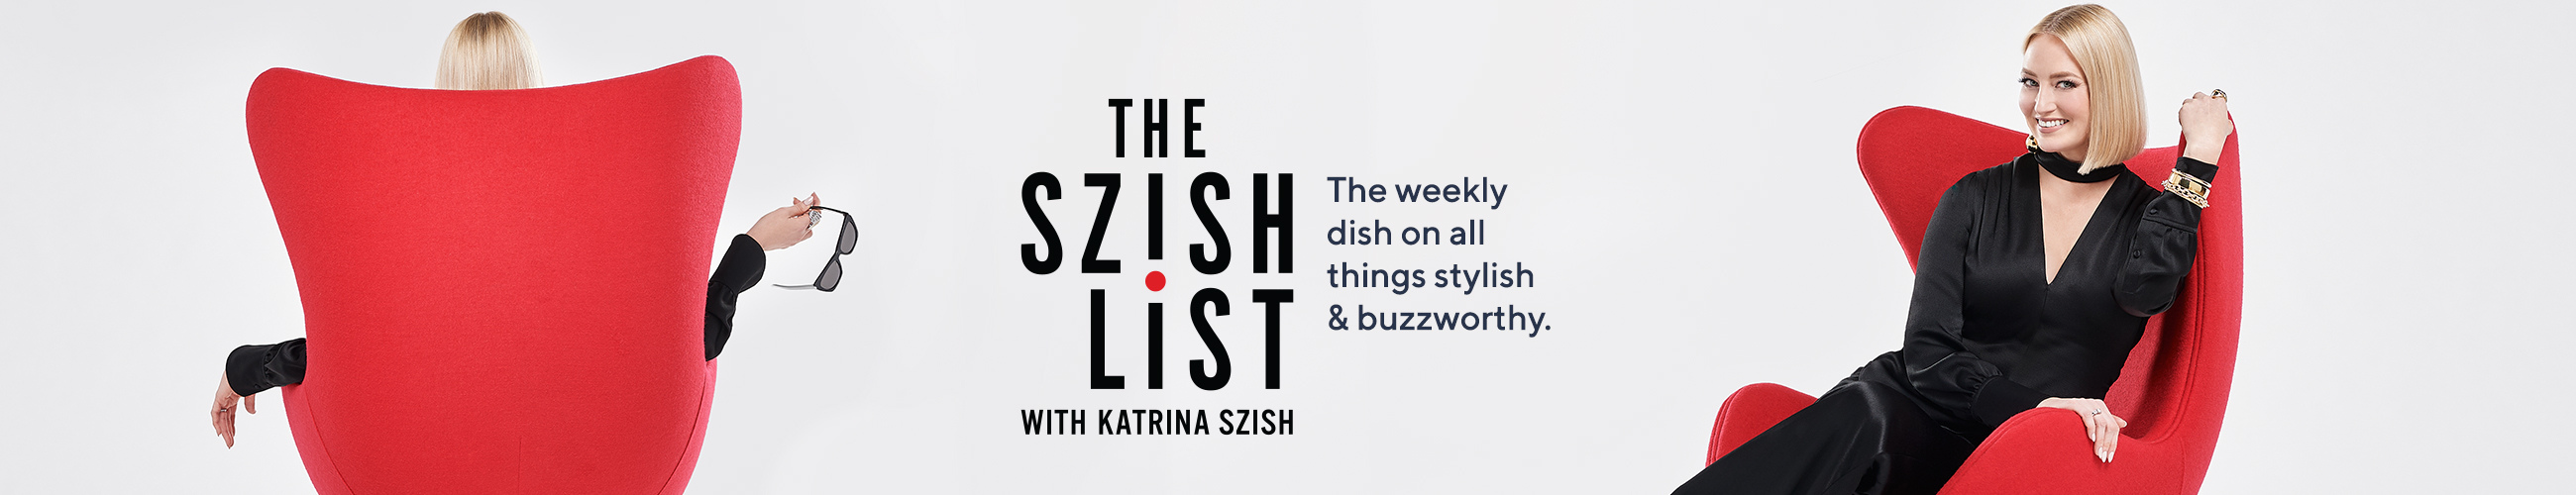 The Szish List.  The weekly dish on all things stylish & buzzworthy.